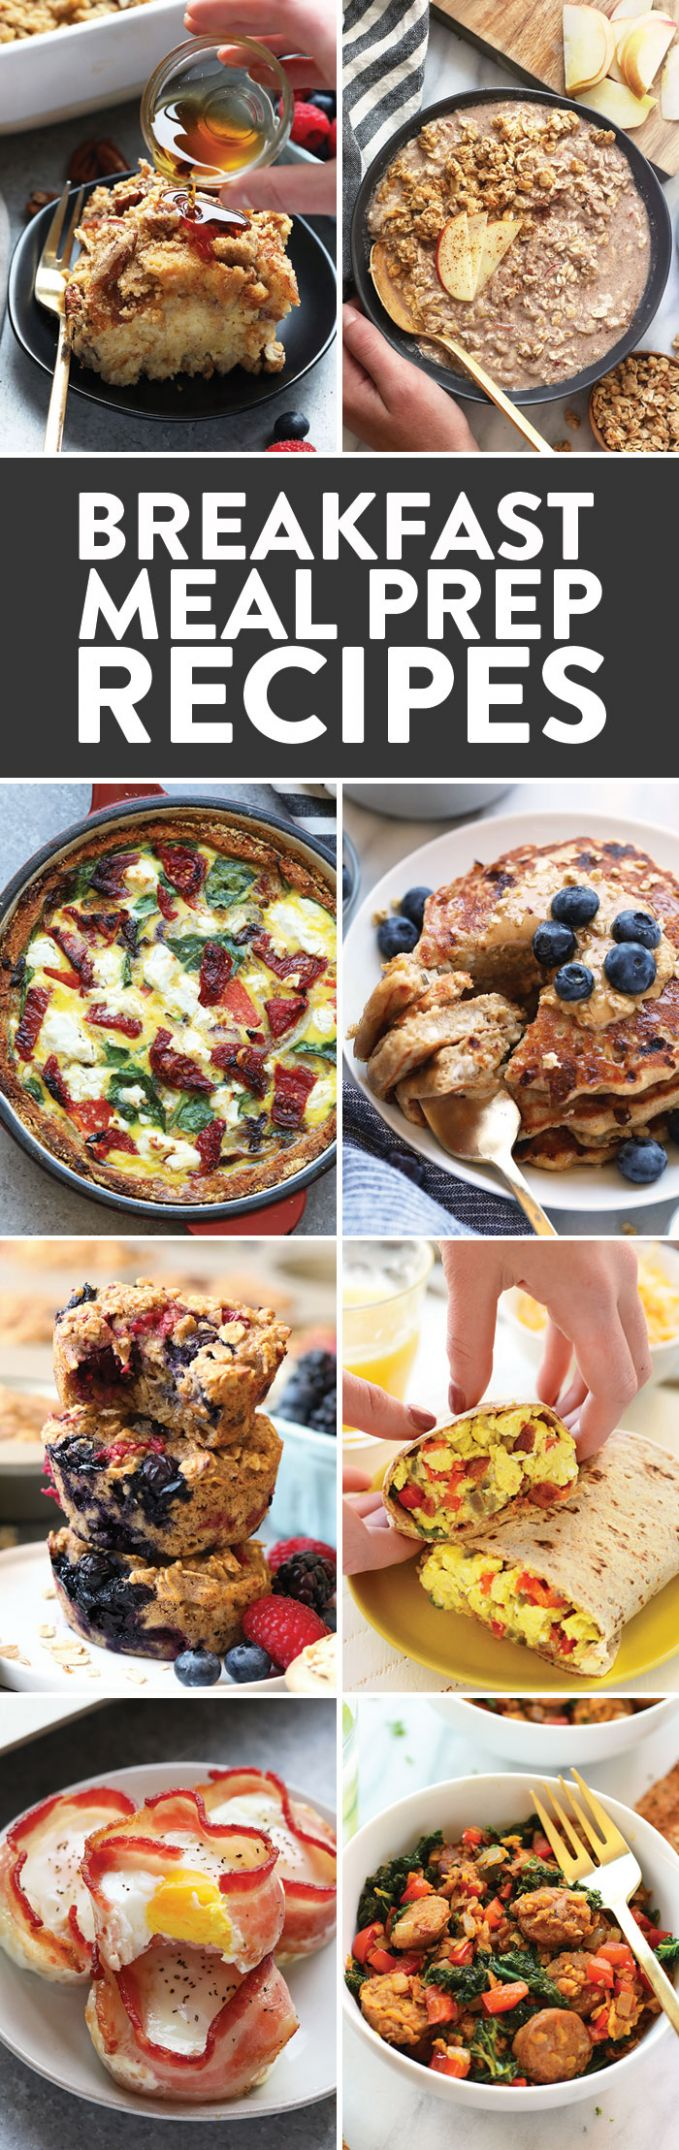 Breakfast Meal Prep Recipes - Fit Foodie Finds